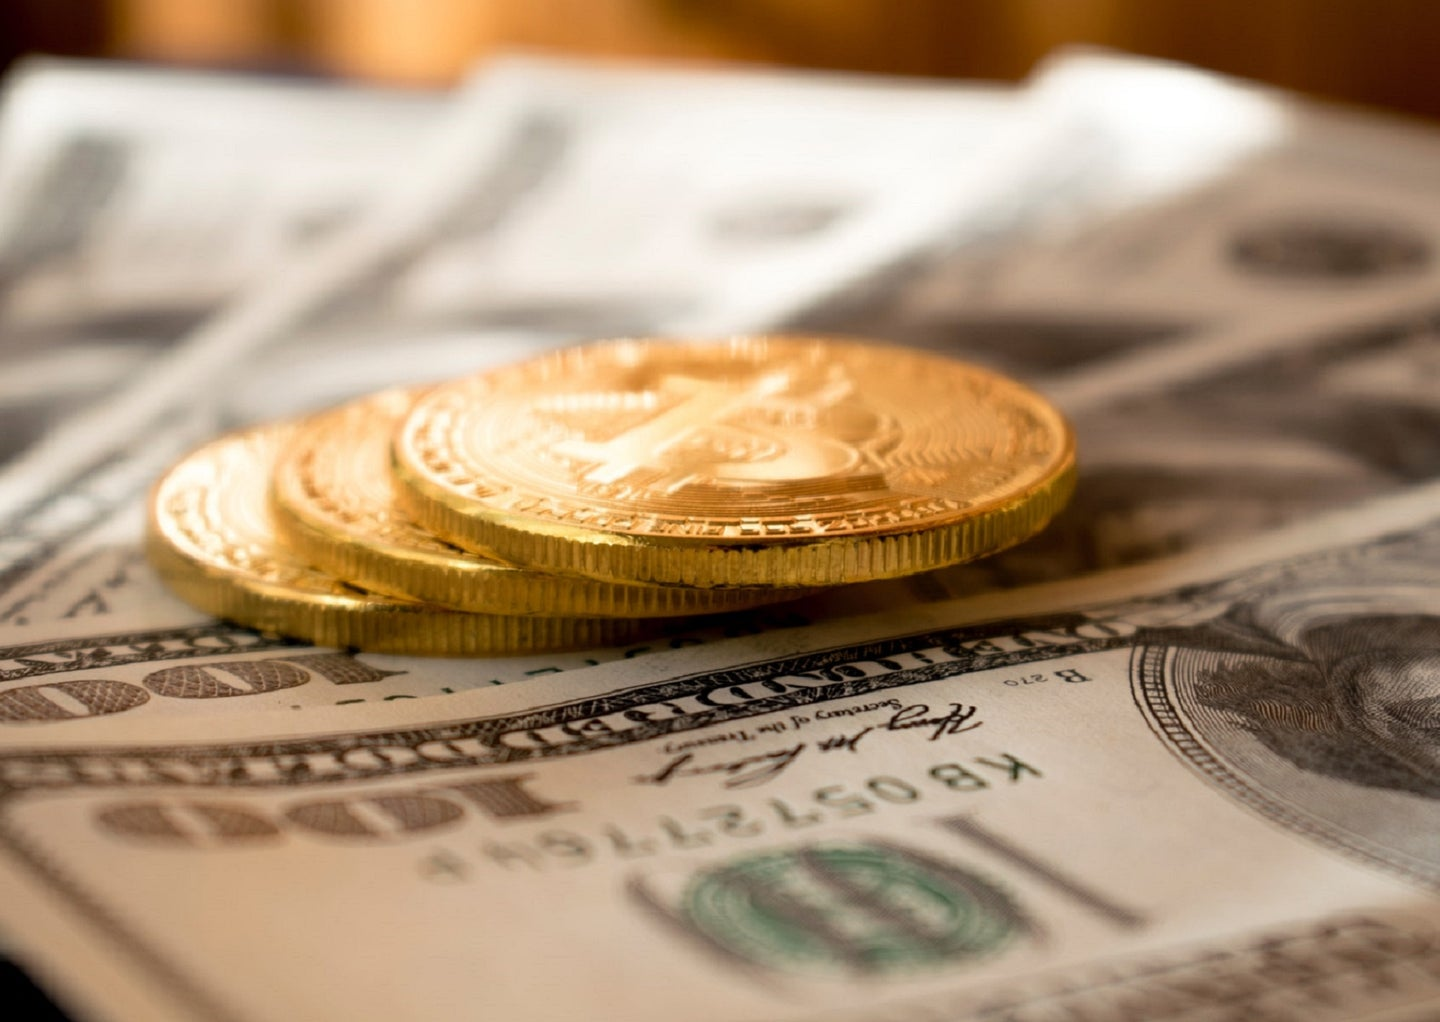 US dollars determine stablecoin value